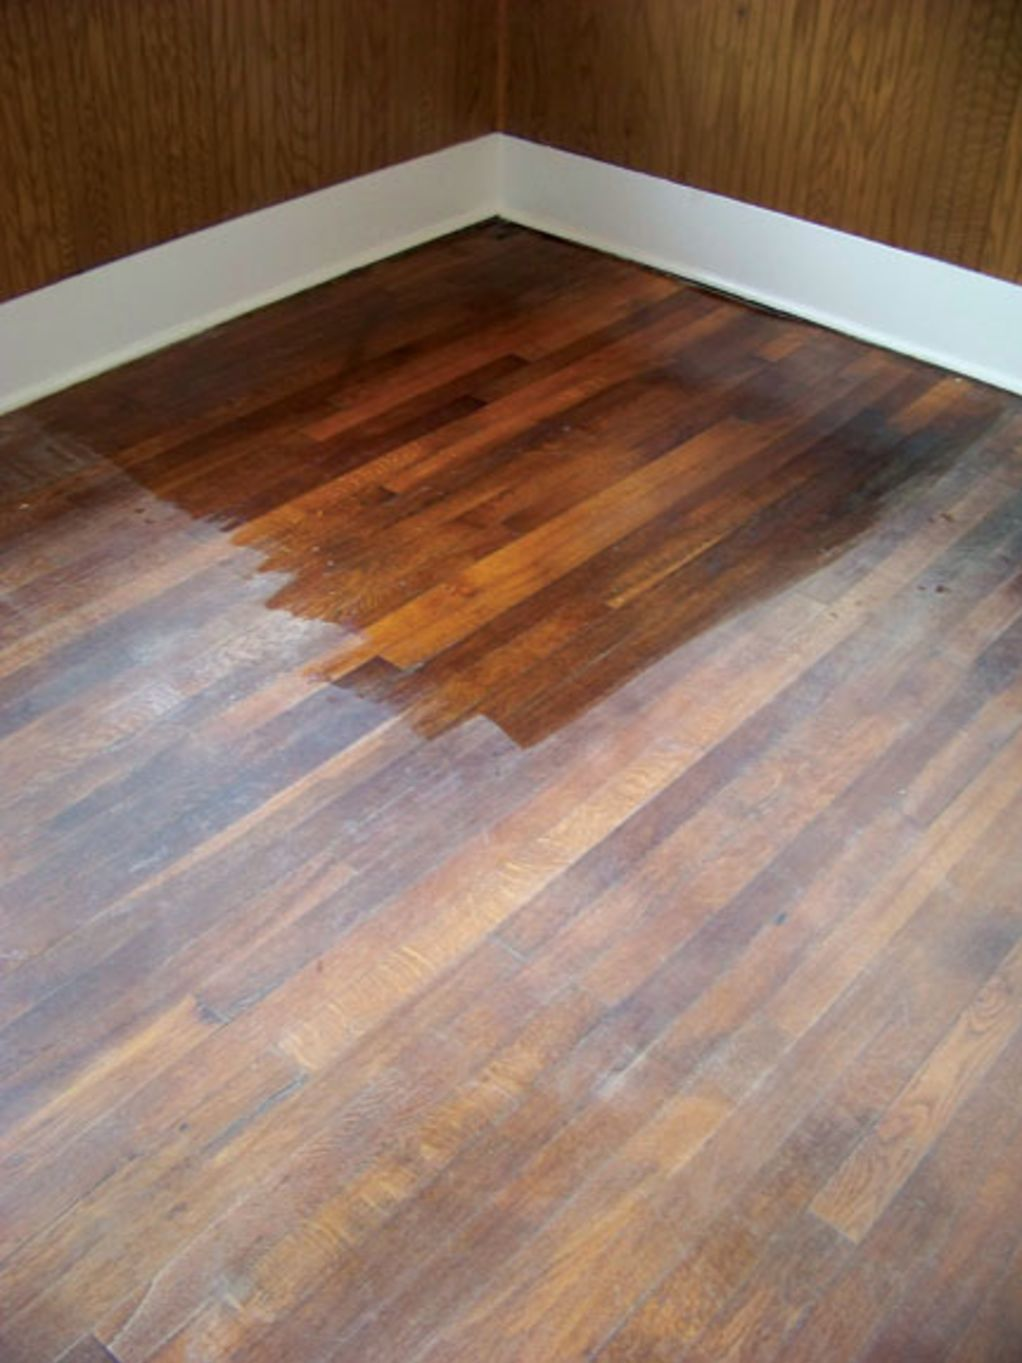 Refinishing Wood Floors Refinish